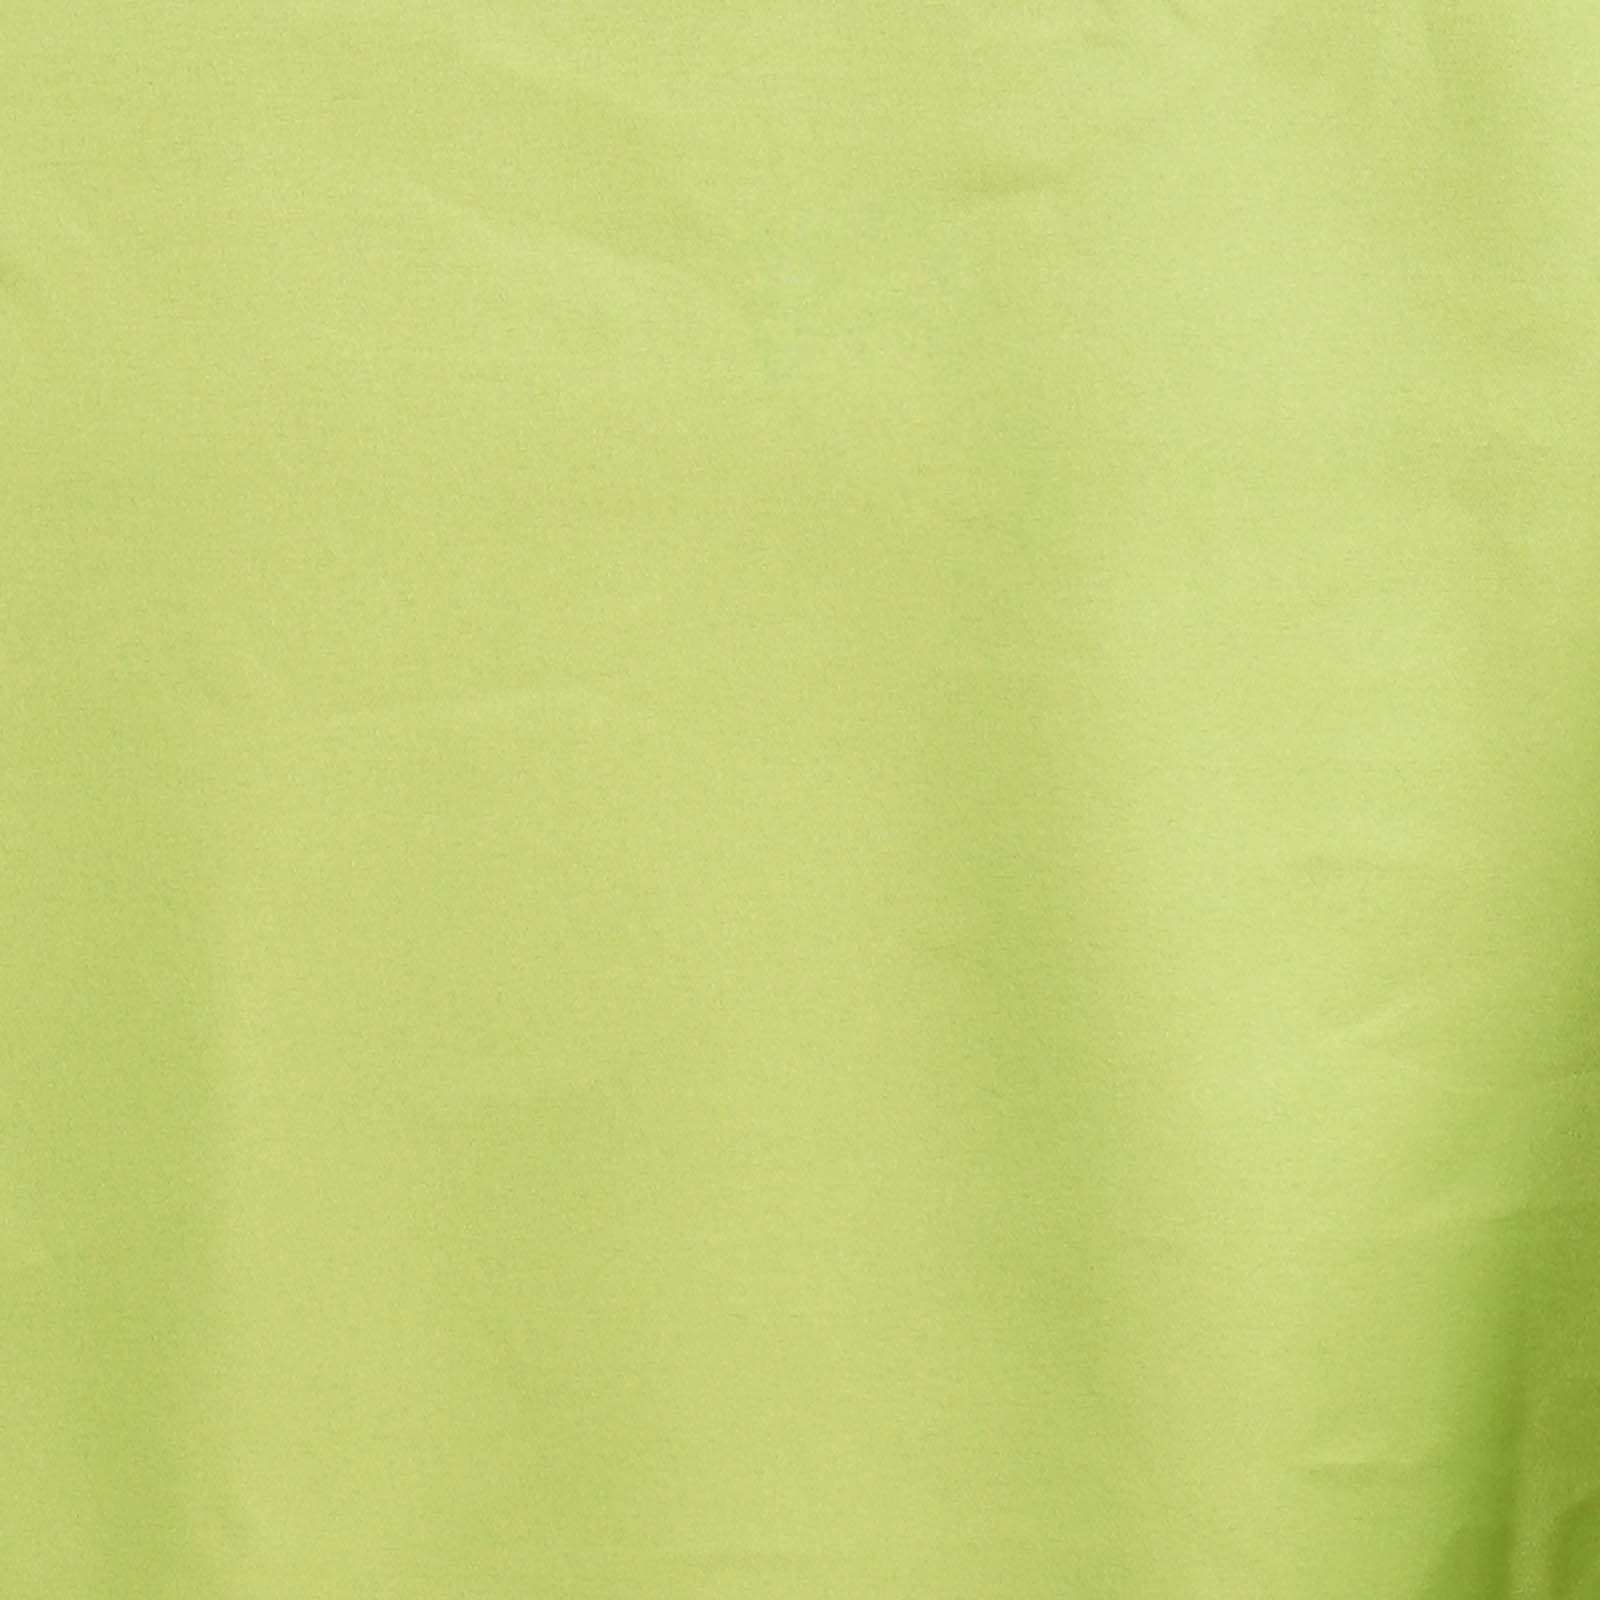 90x156-034-Polyester-Rectangle-Tablecloths-For-Wedding-Party-Banquet-Events thumbnail 51